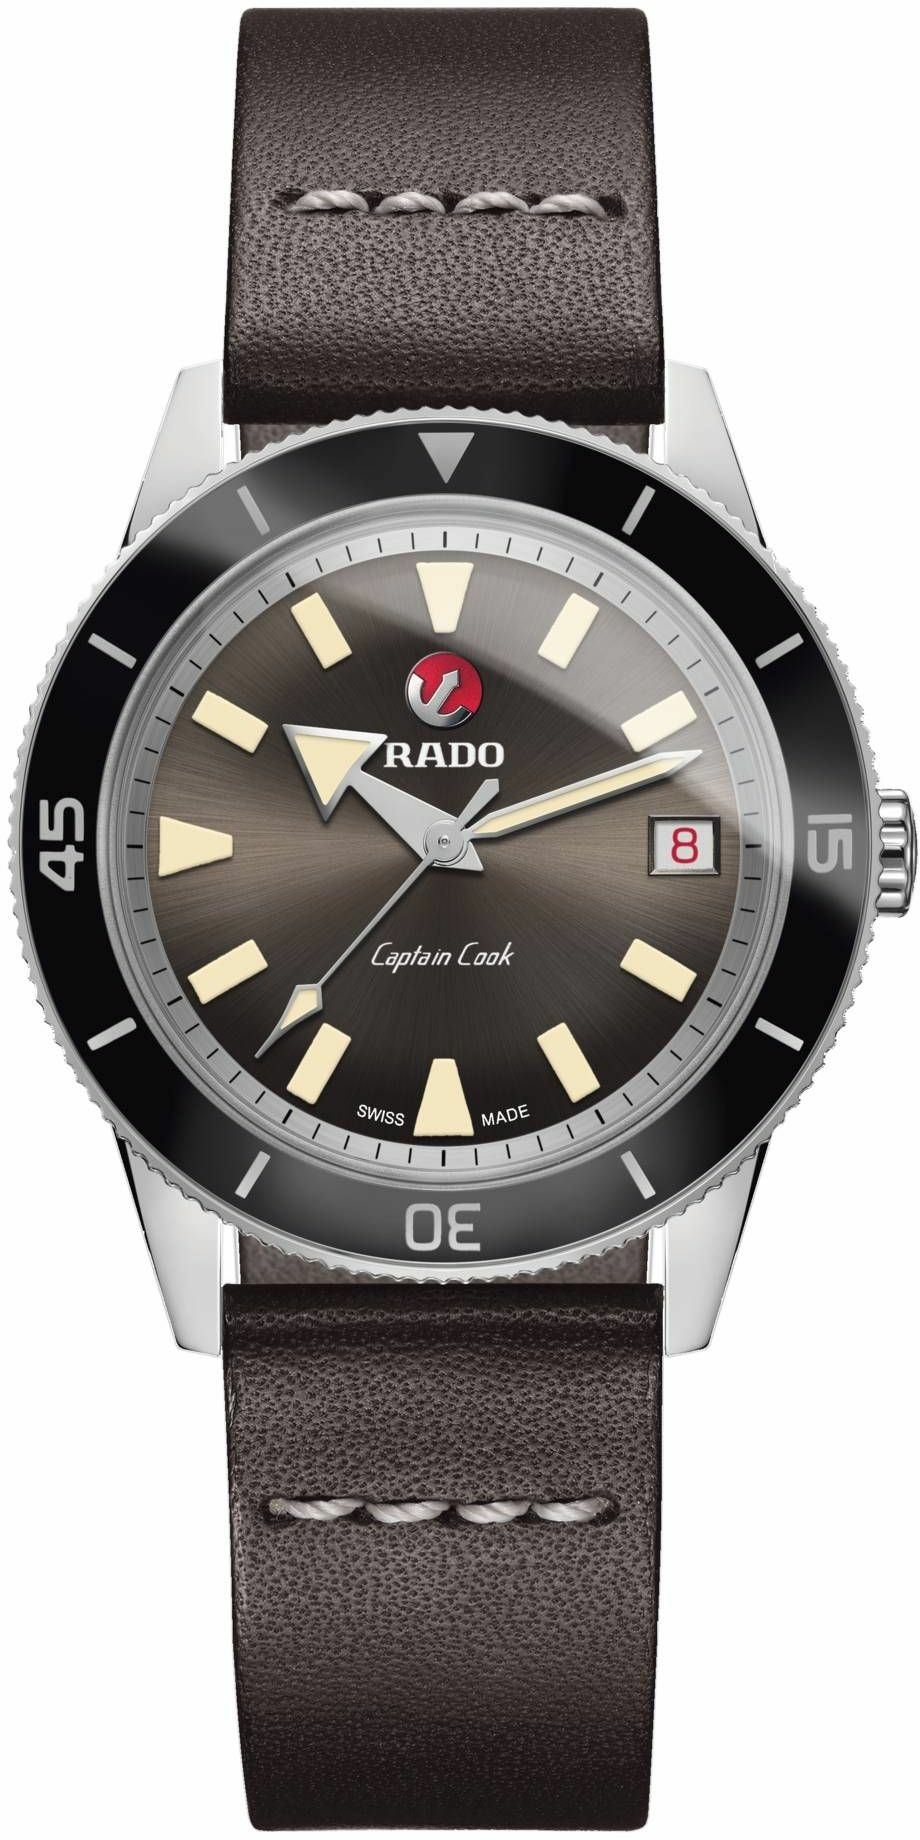 Rado HyperChrome Captain Cook M Automatique Limited Edition